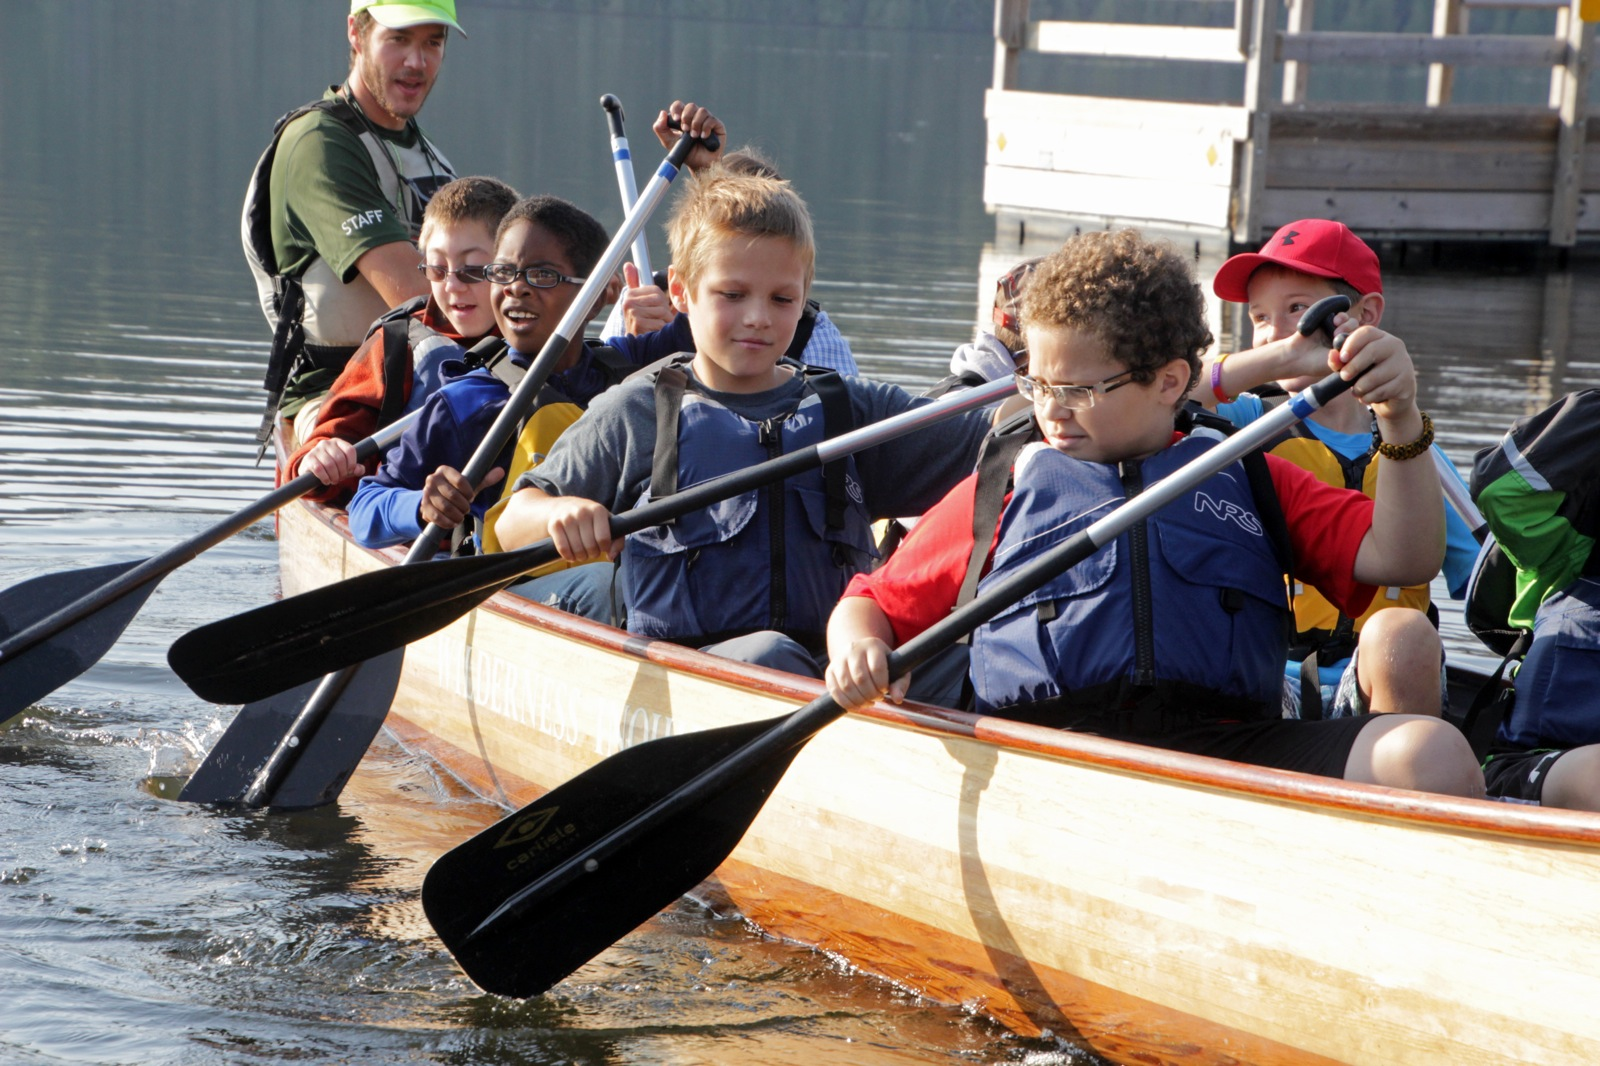 a group of youth work together to paddle the voyageur canoe along the lake